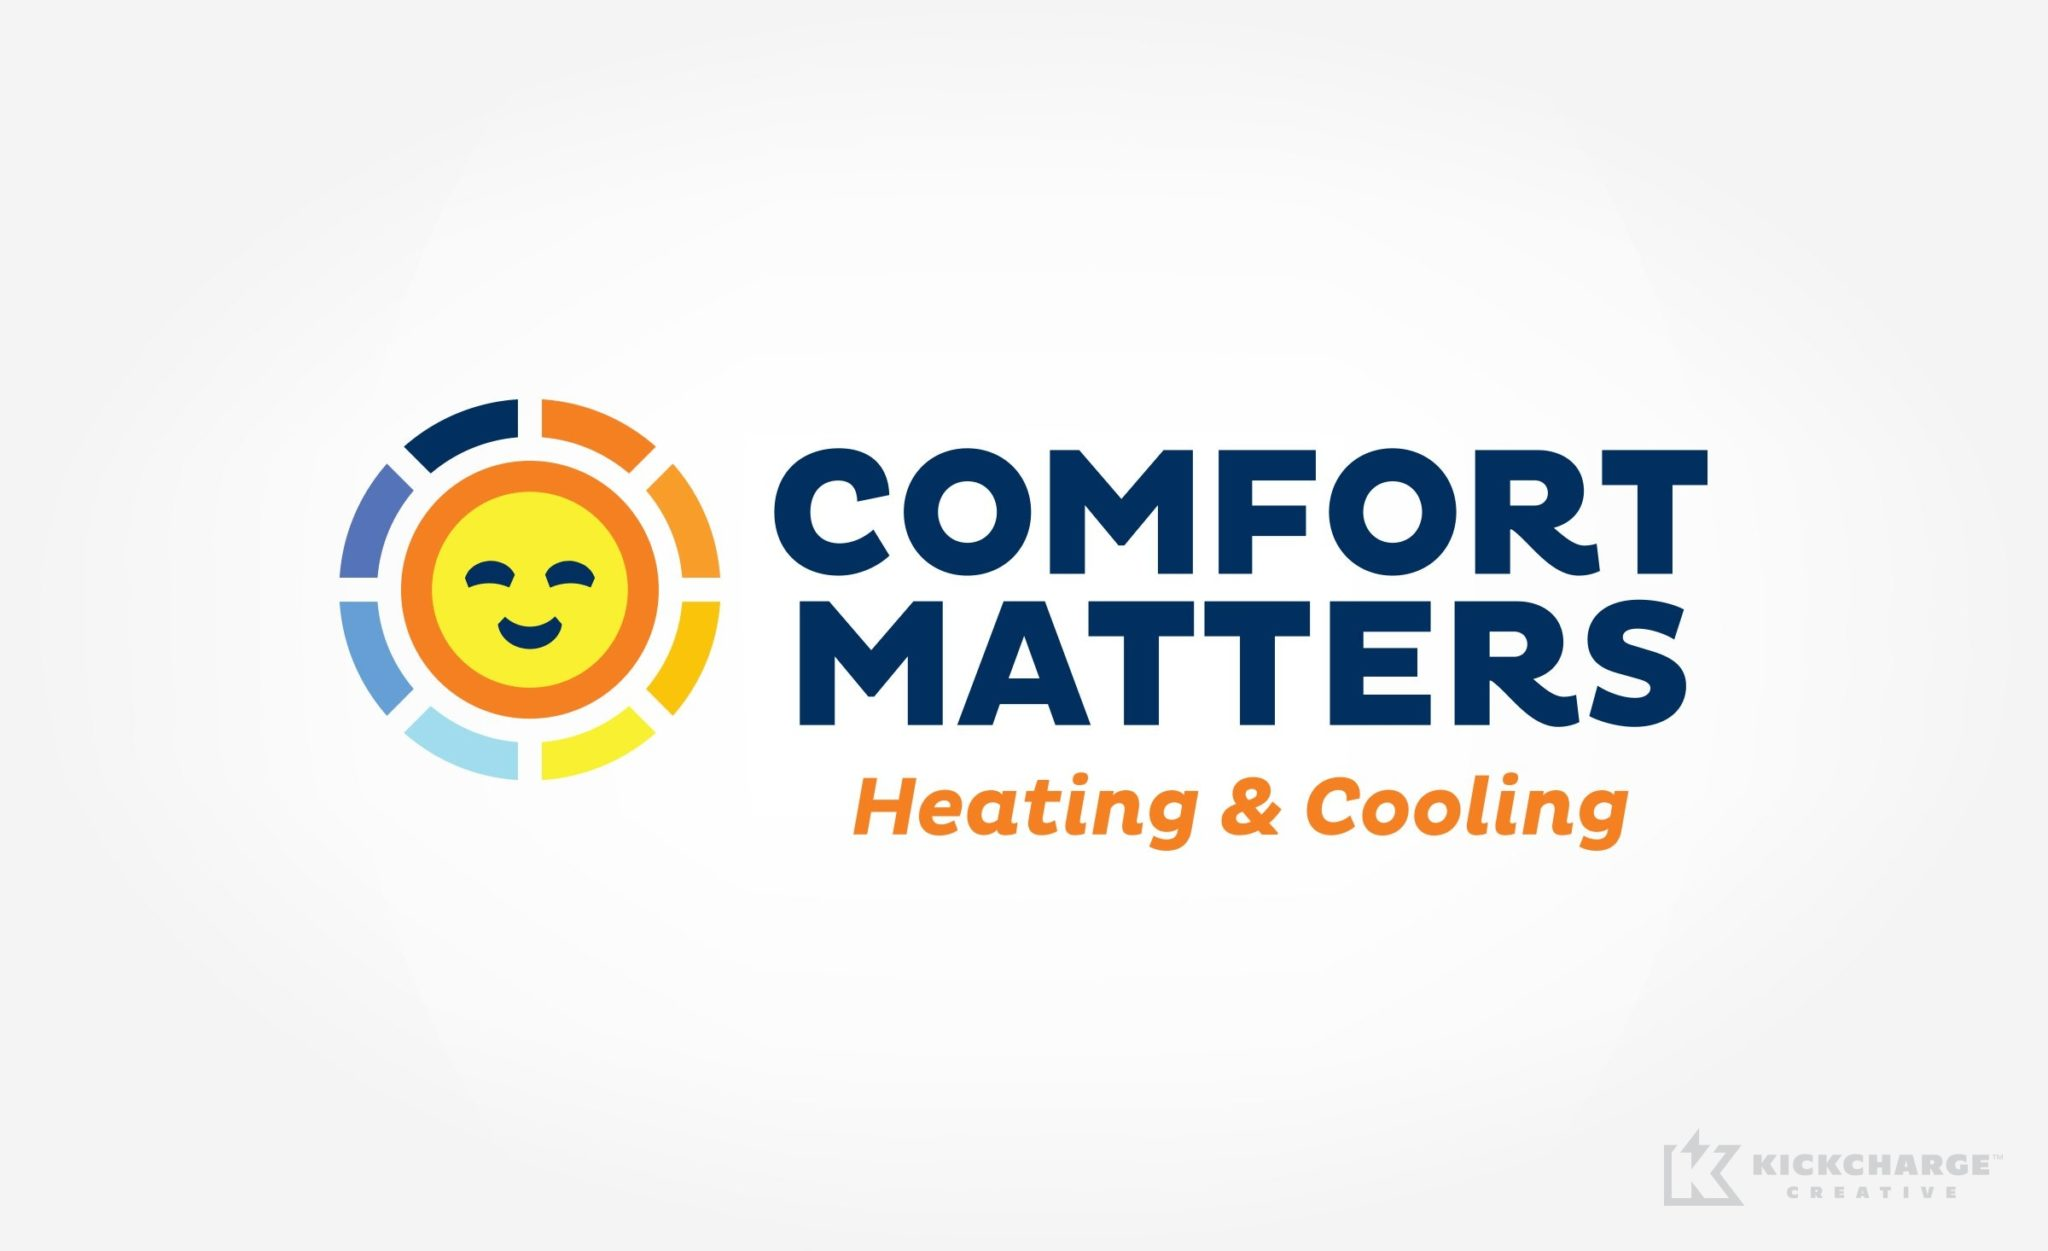 Logo design for Comfort Matters Heating & Cooling.